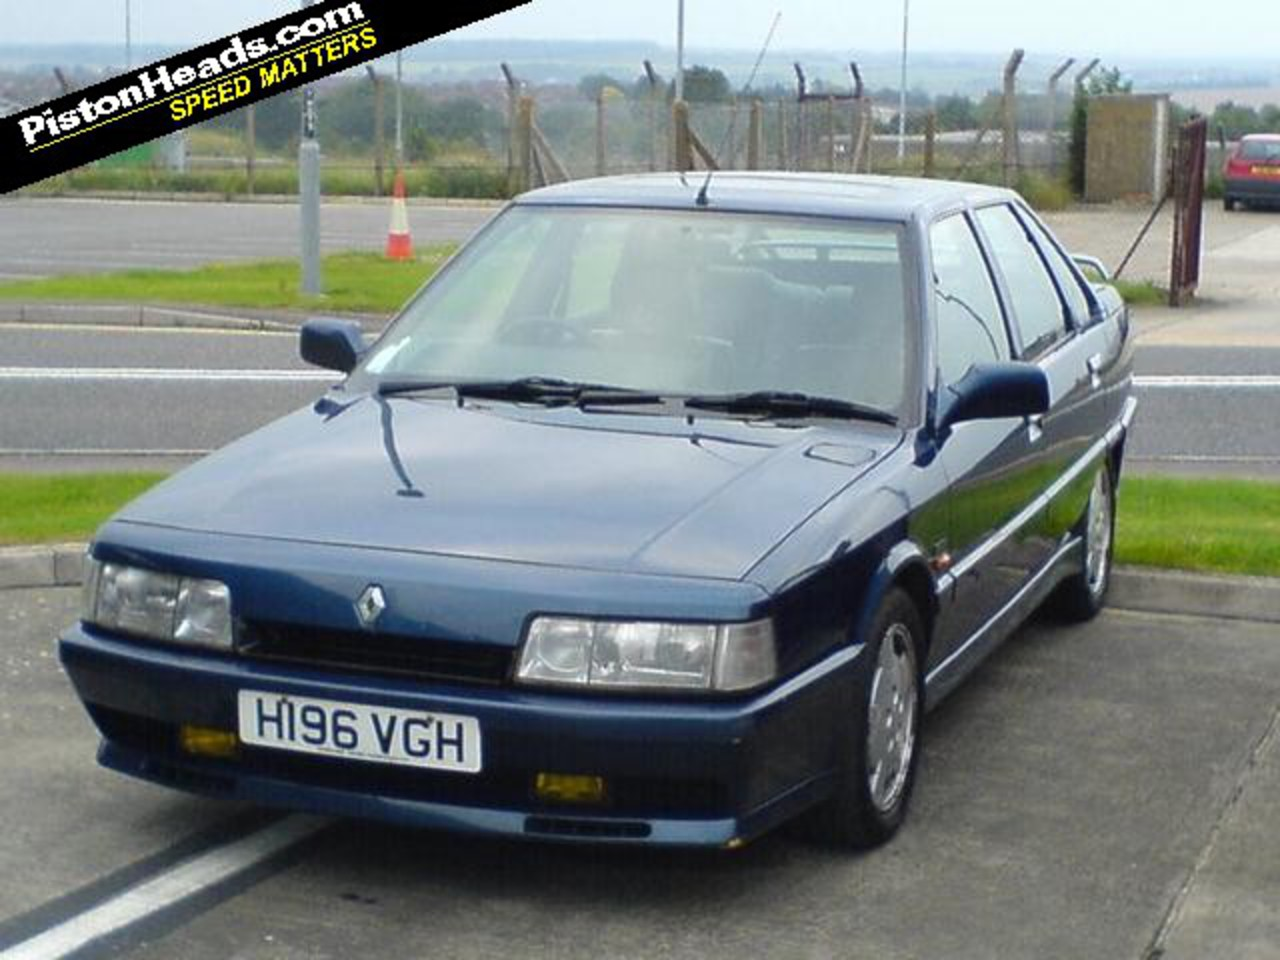 The Renault 21 Turbo is a relic of the era when every respectable repmobile